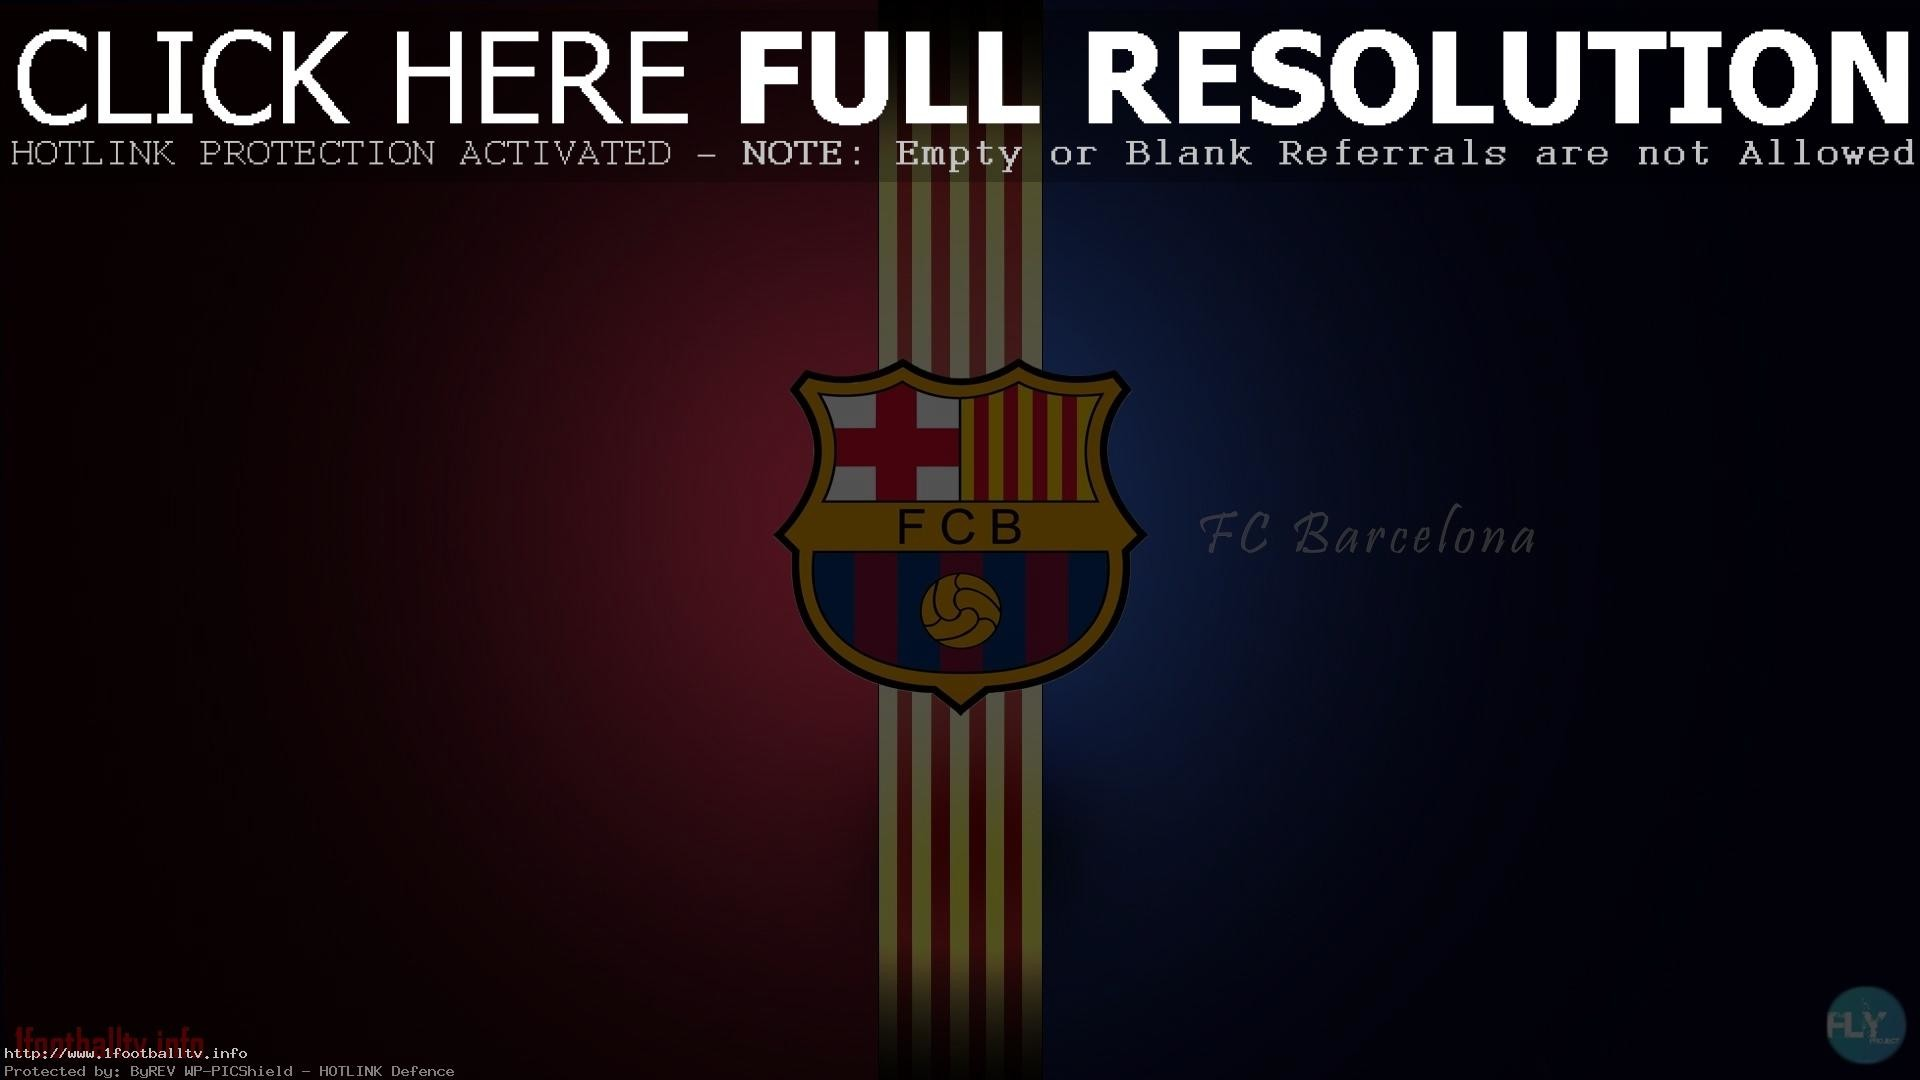 fc barcelona hd wallpaper for iphone new barcelona fc of fc barcelona hd  wallpaper for iphone